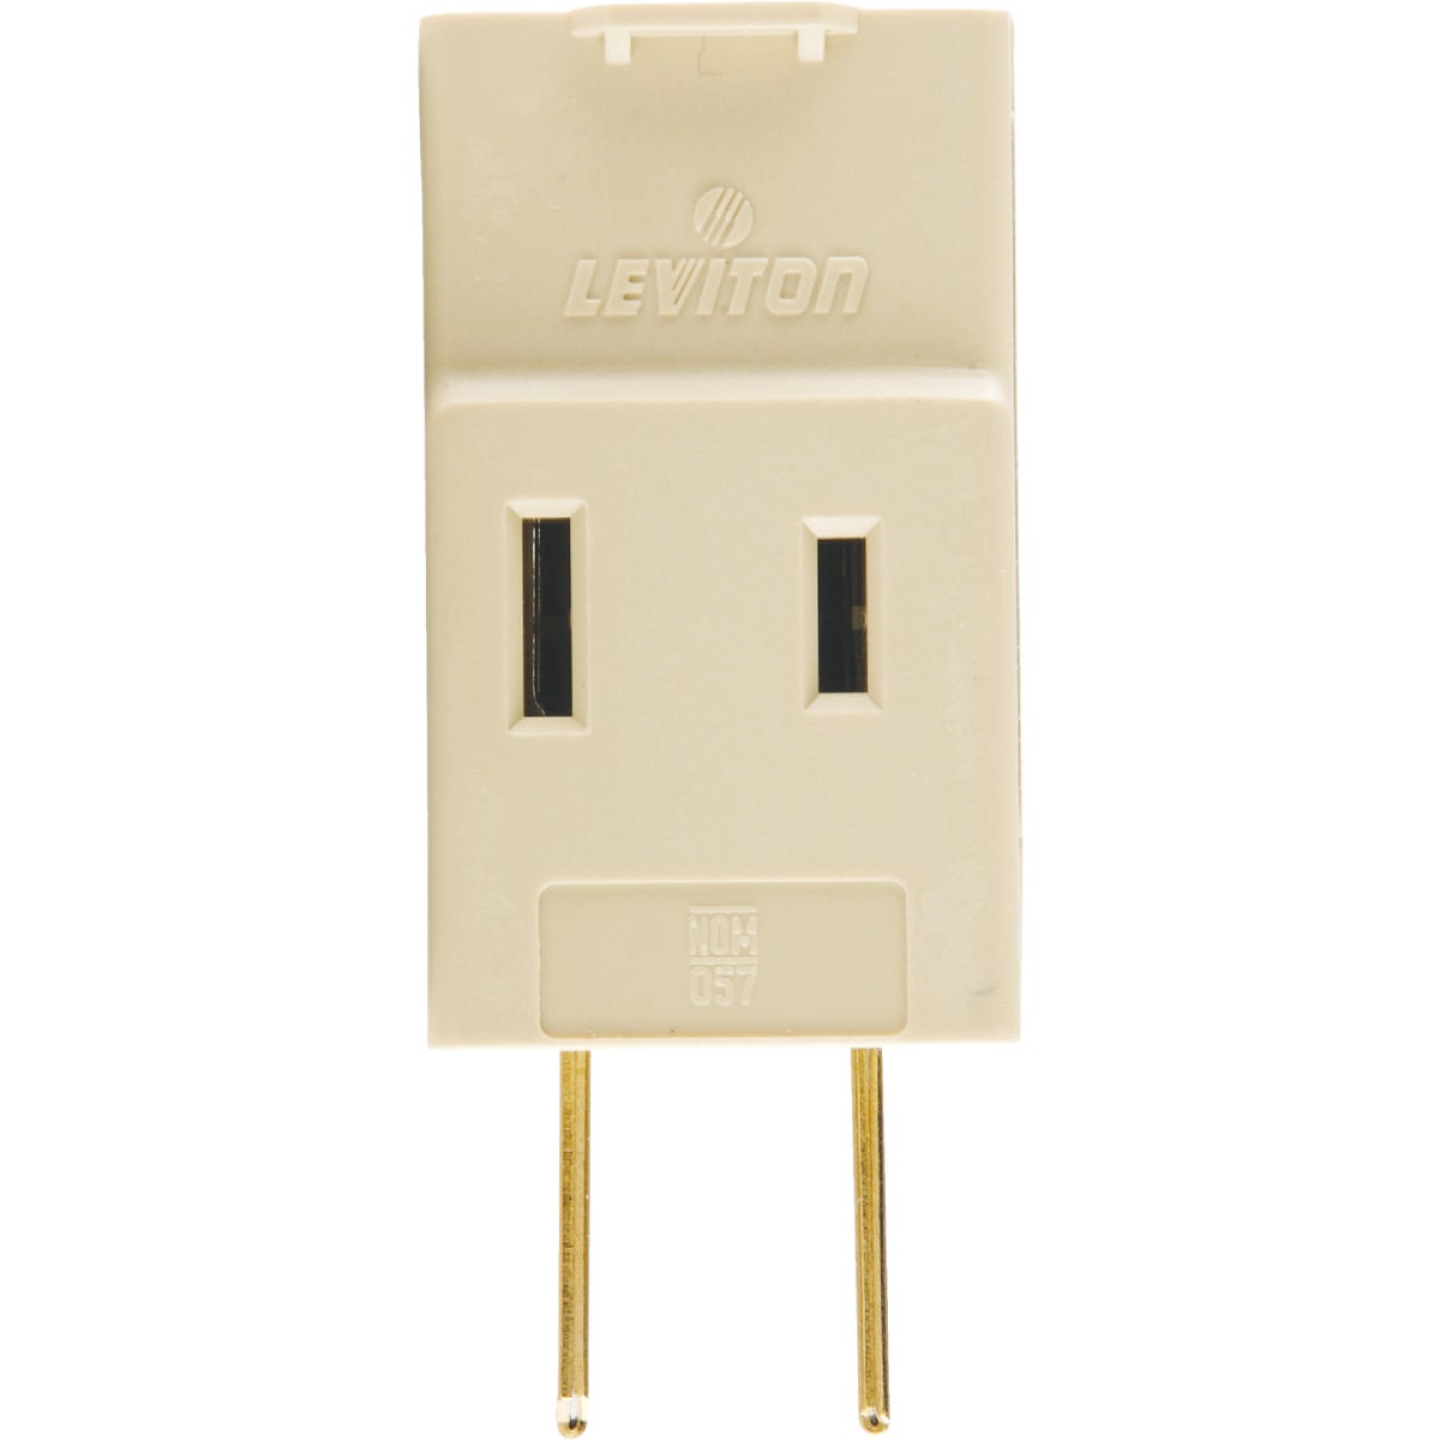 Leviton Ivory 15A 3-Outlet Cube Tap Image 2